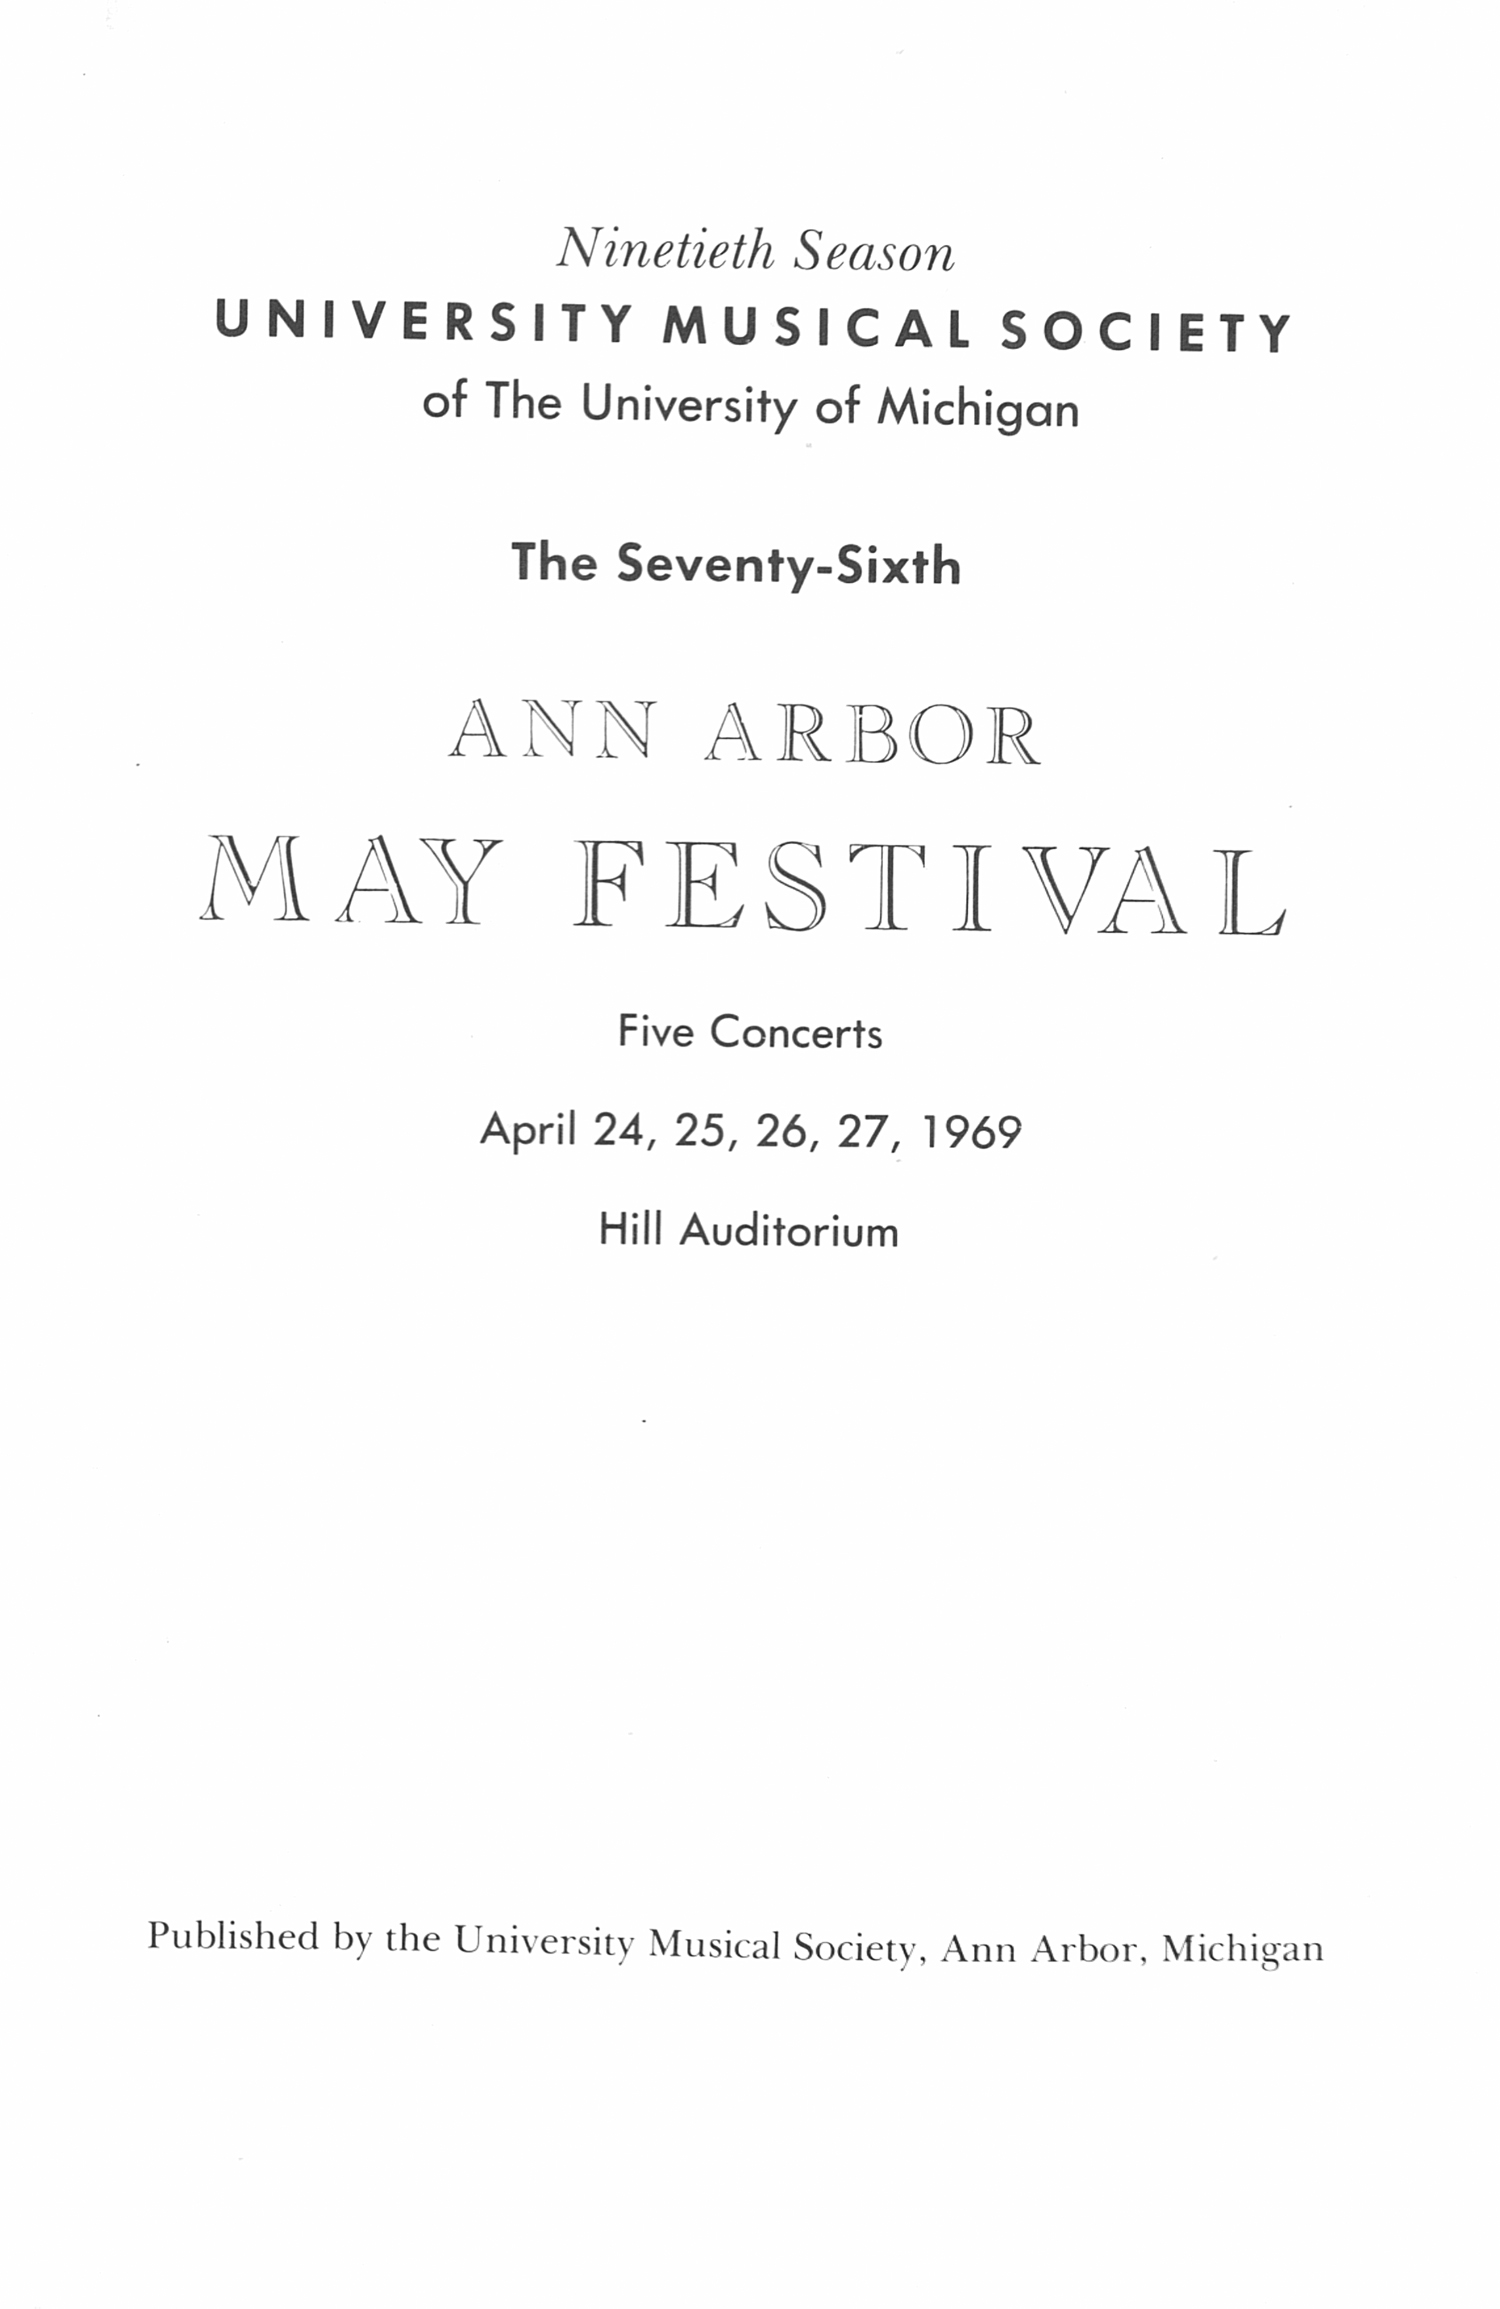 UMS Concert Program, April 24, 25, 26, 27, 1969: The Seventy-sixth Ann Arbor May Festival -- The Philadelphia Orchestra image